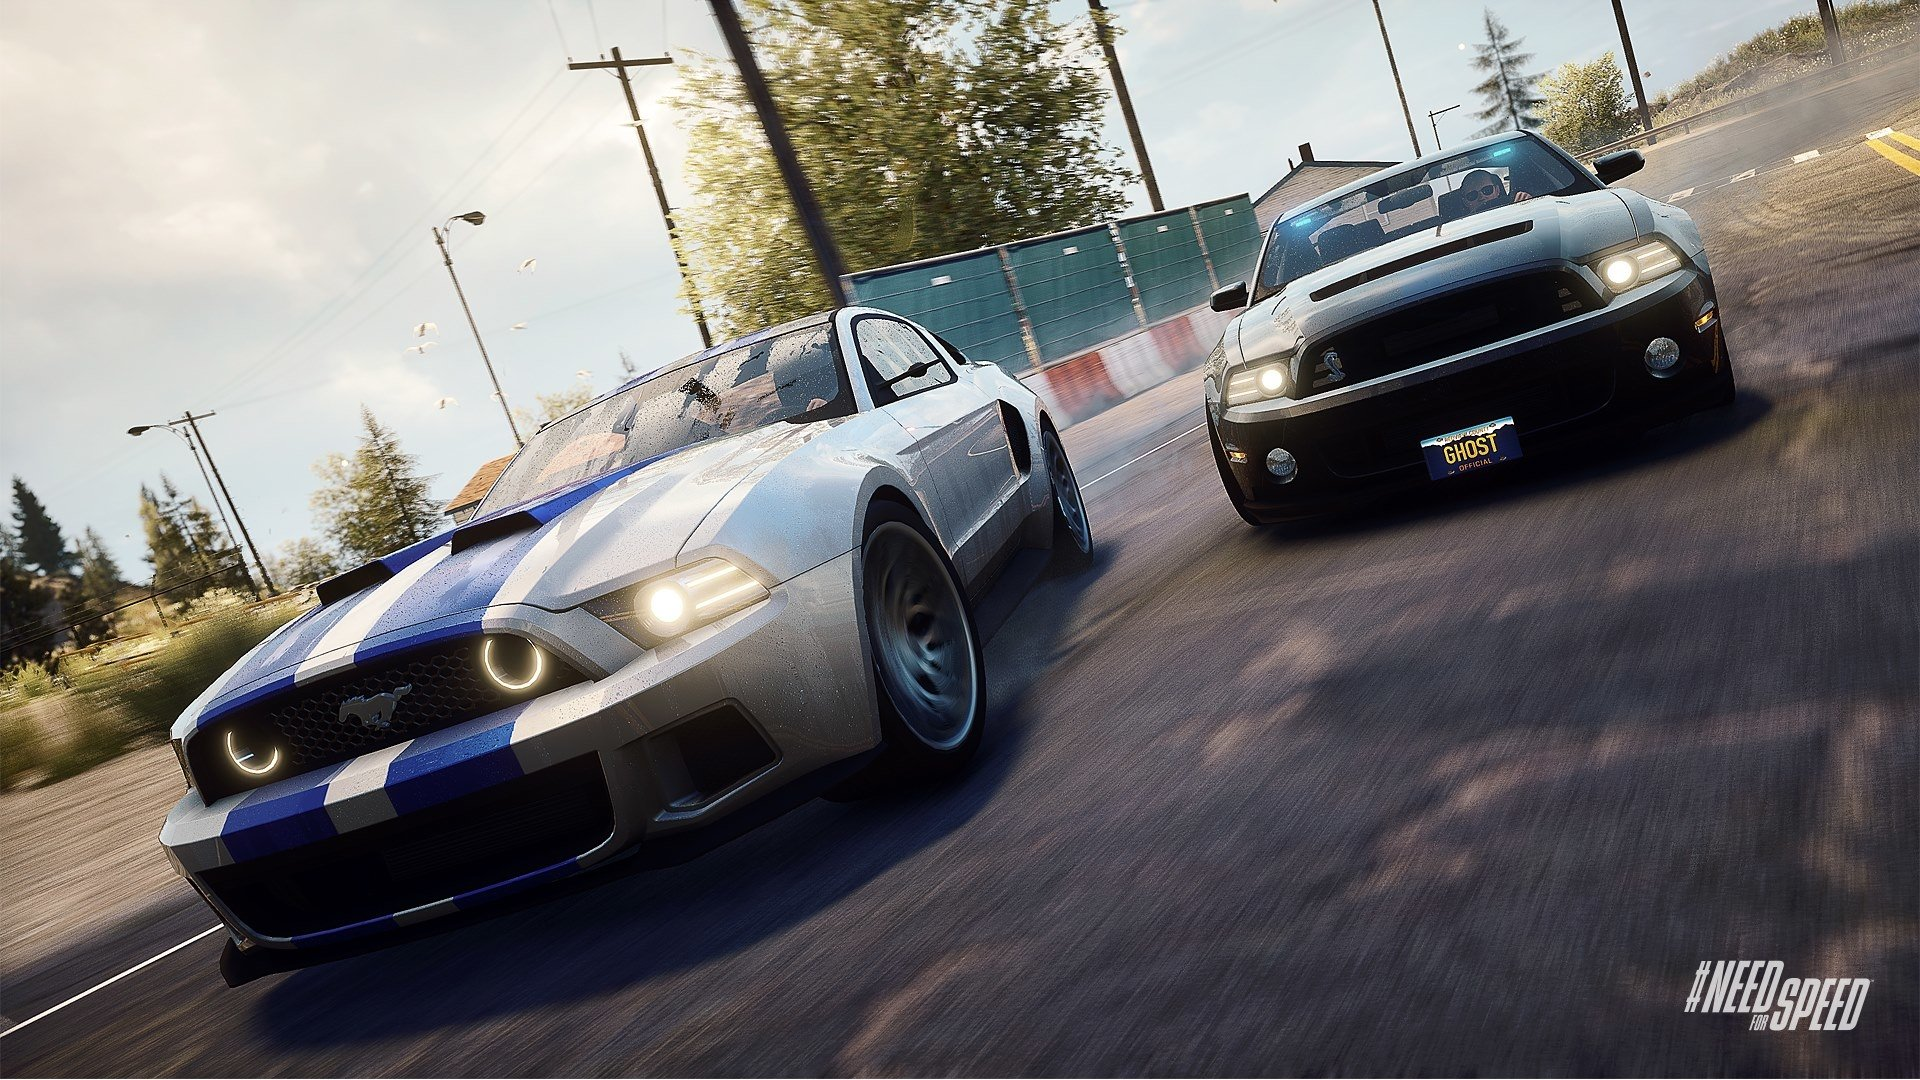 Need for Speed: Rivals Full HD Wallpaper and Background ...Nfs Rivals Wallpaper Hd